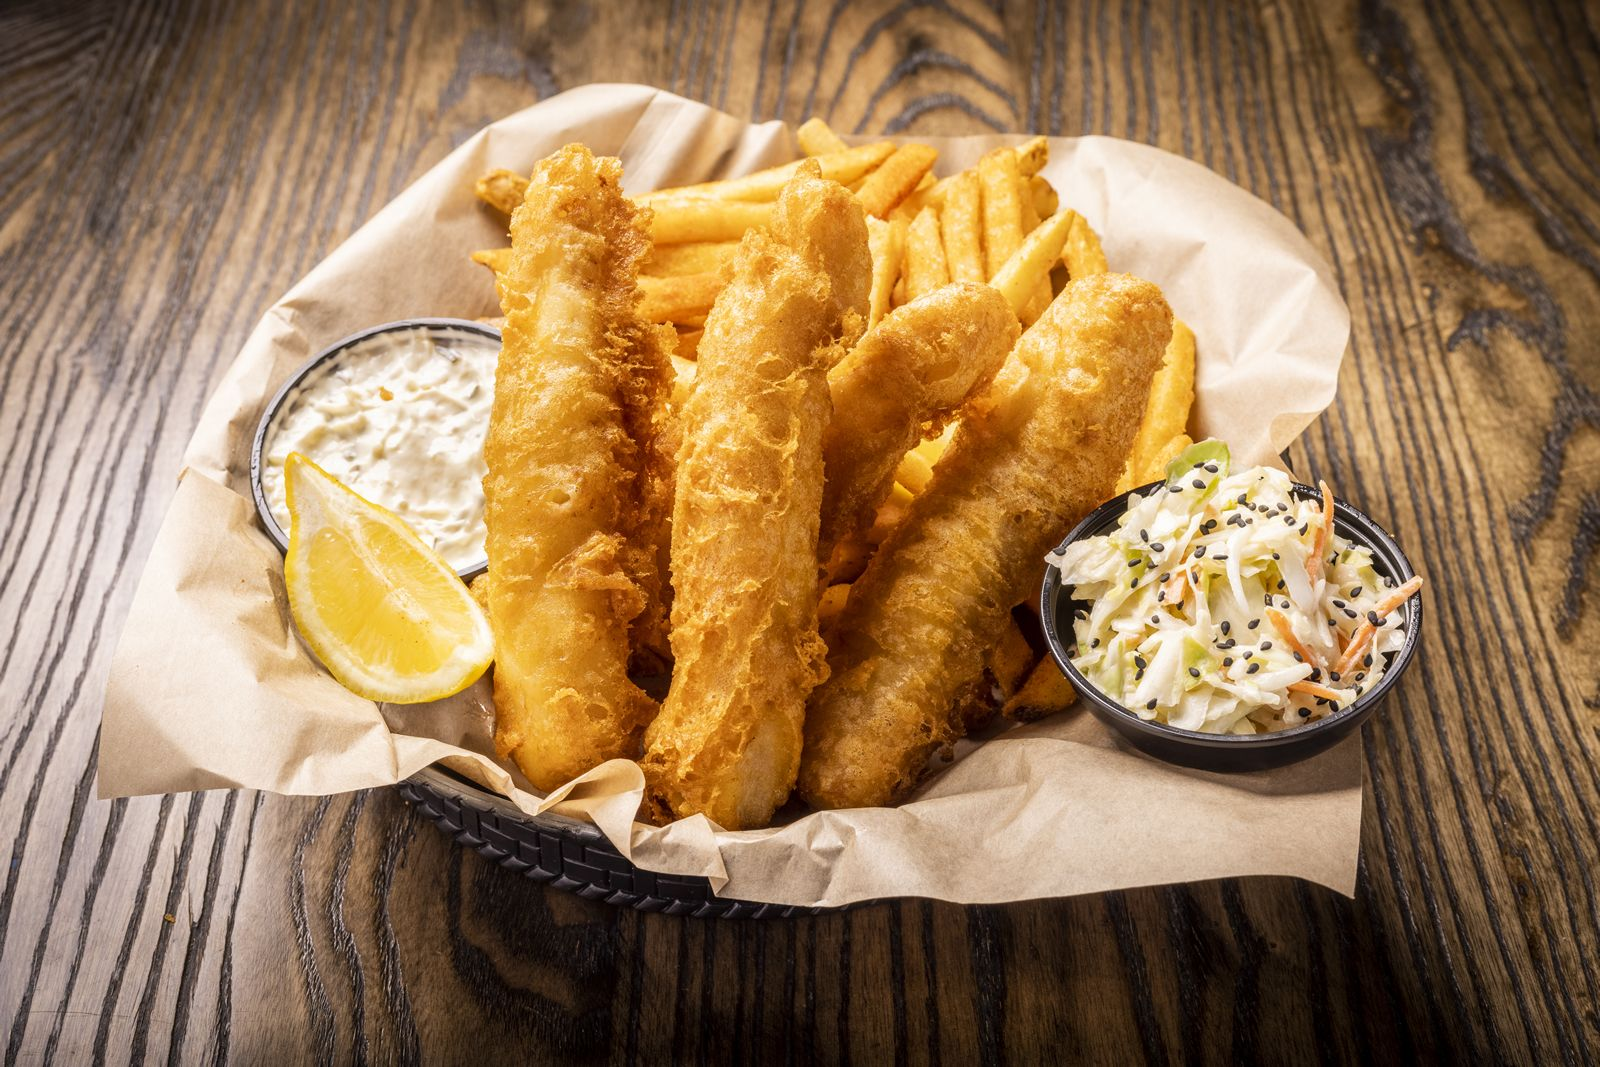 Wingers Expands Menu with Launch of New Crazy Delicious Items